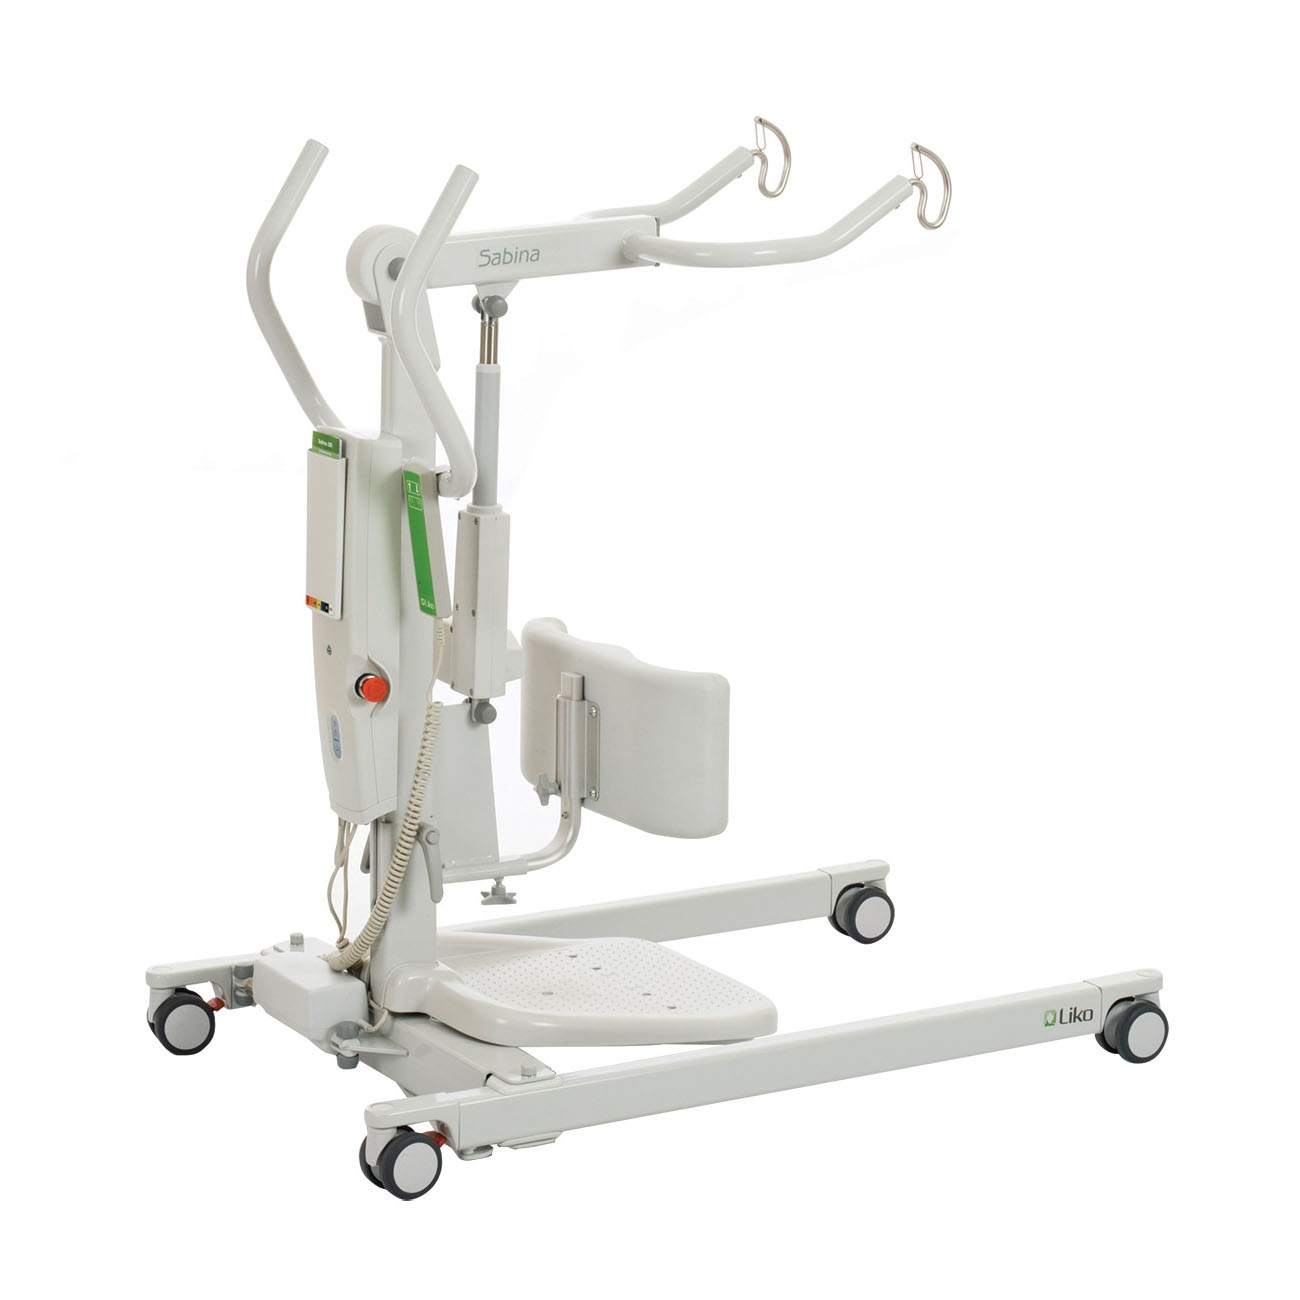 Liko Sabina II EE sit-to-stand power patient lift